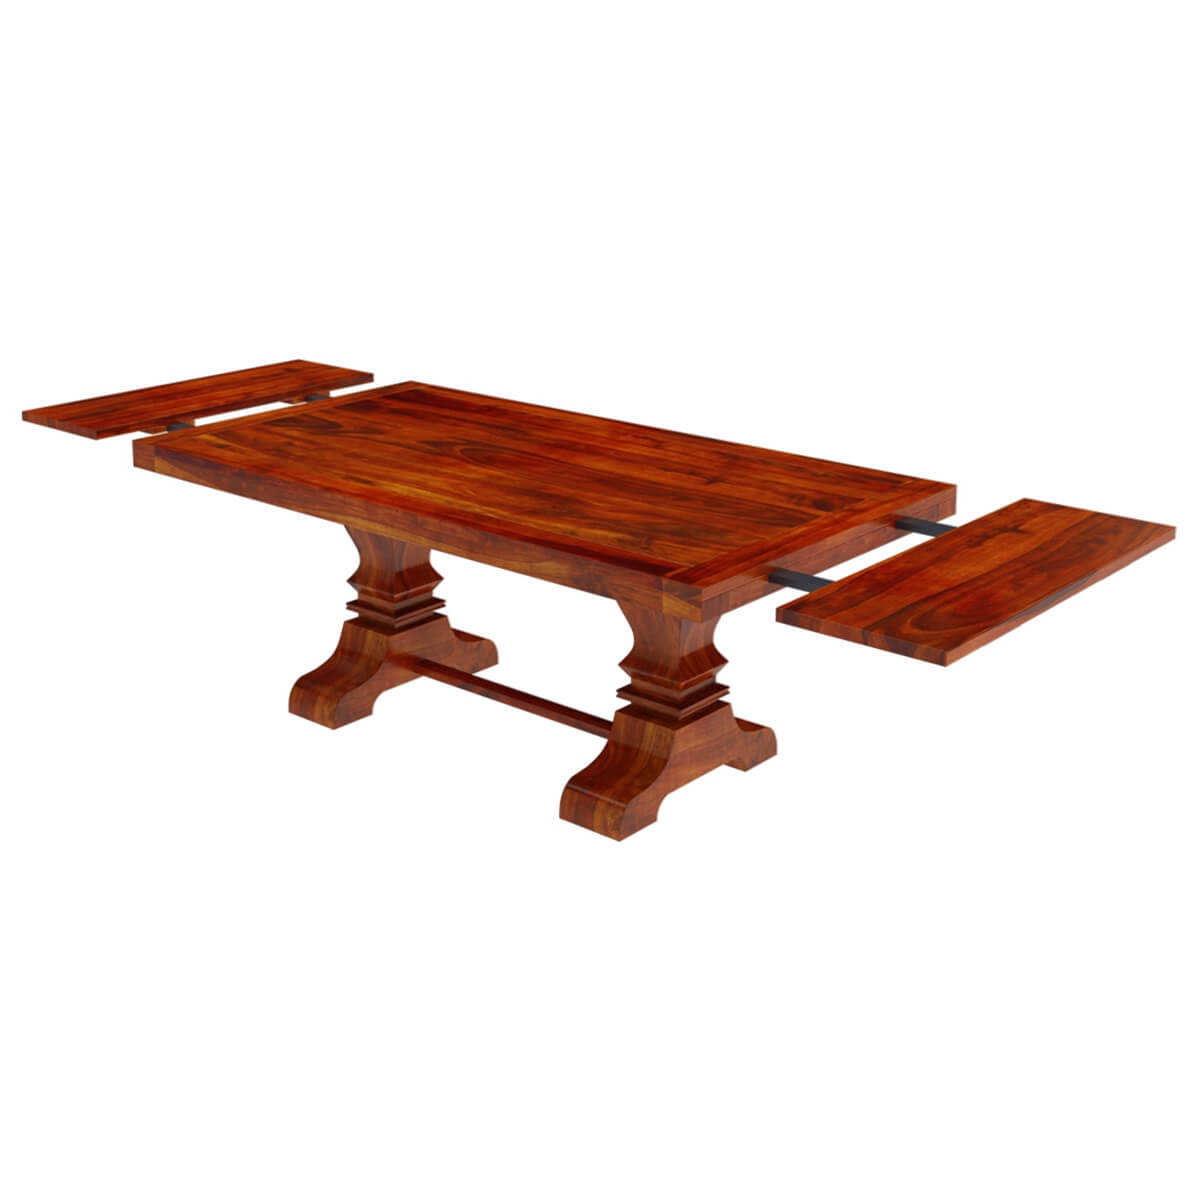 Solid Dining Table And Chairs: Chantilly Chic Solid Wood Extendable Dining Table And